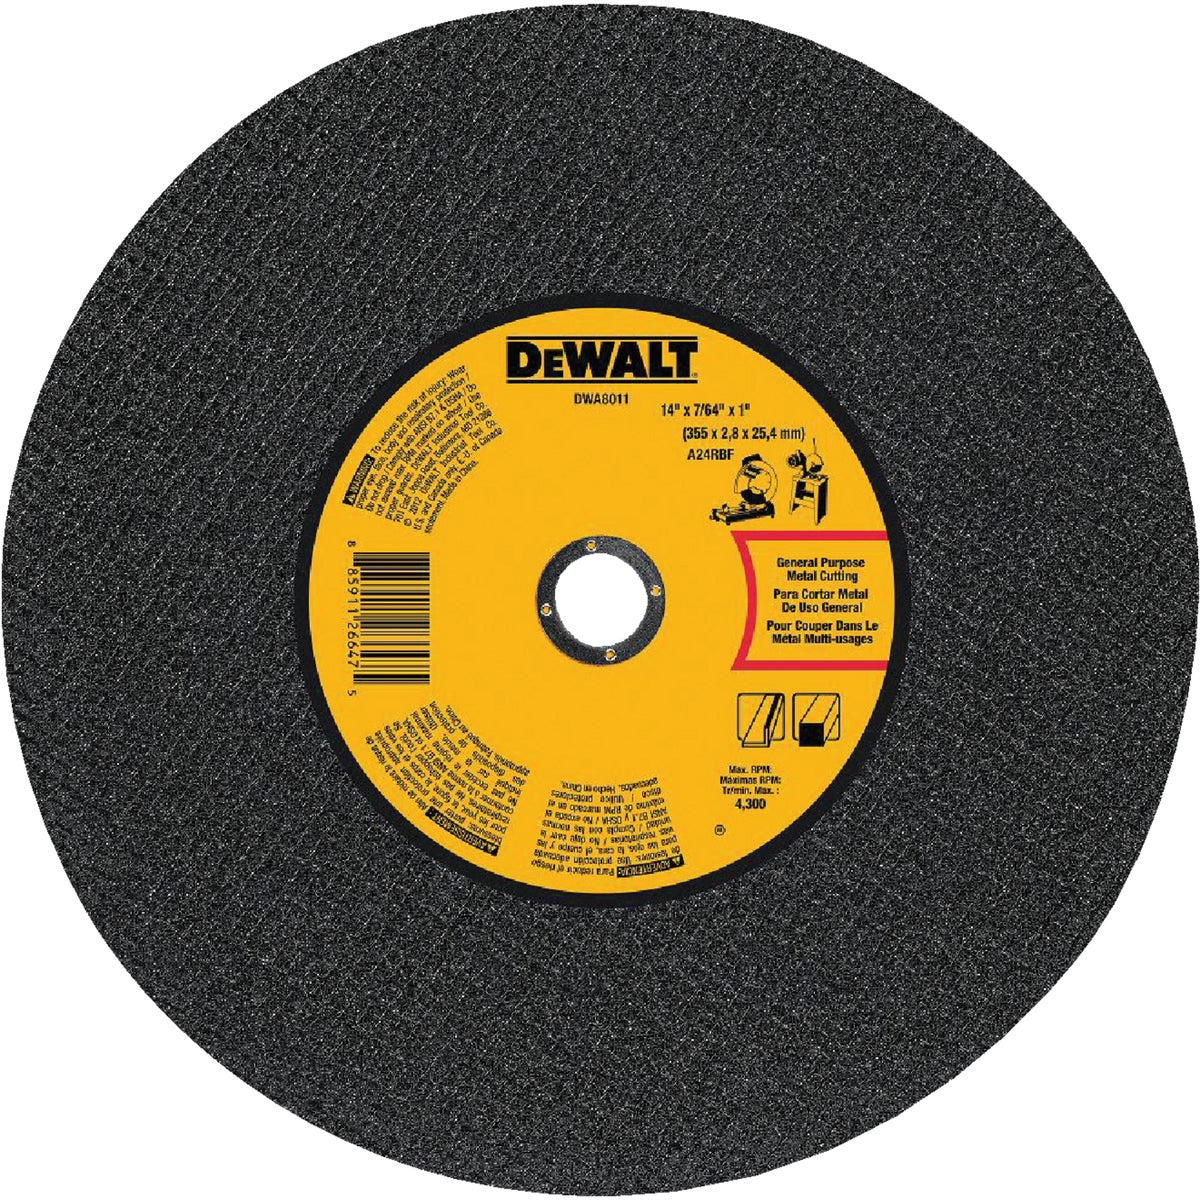 "14"" METAL BLADE - DWA8011 by DeWalt"